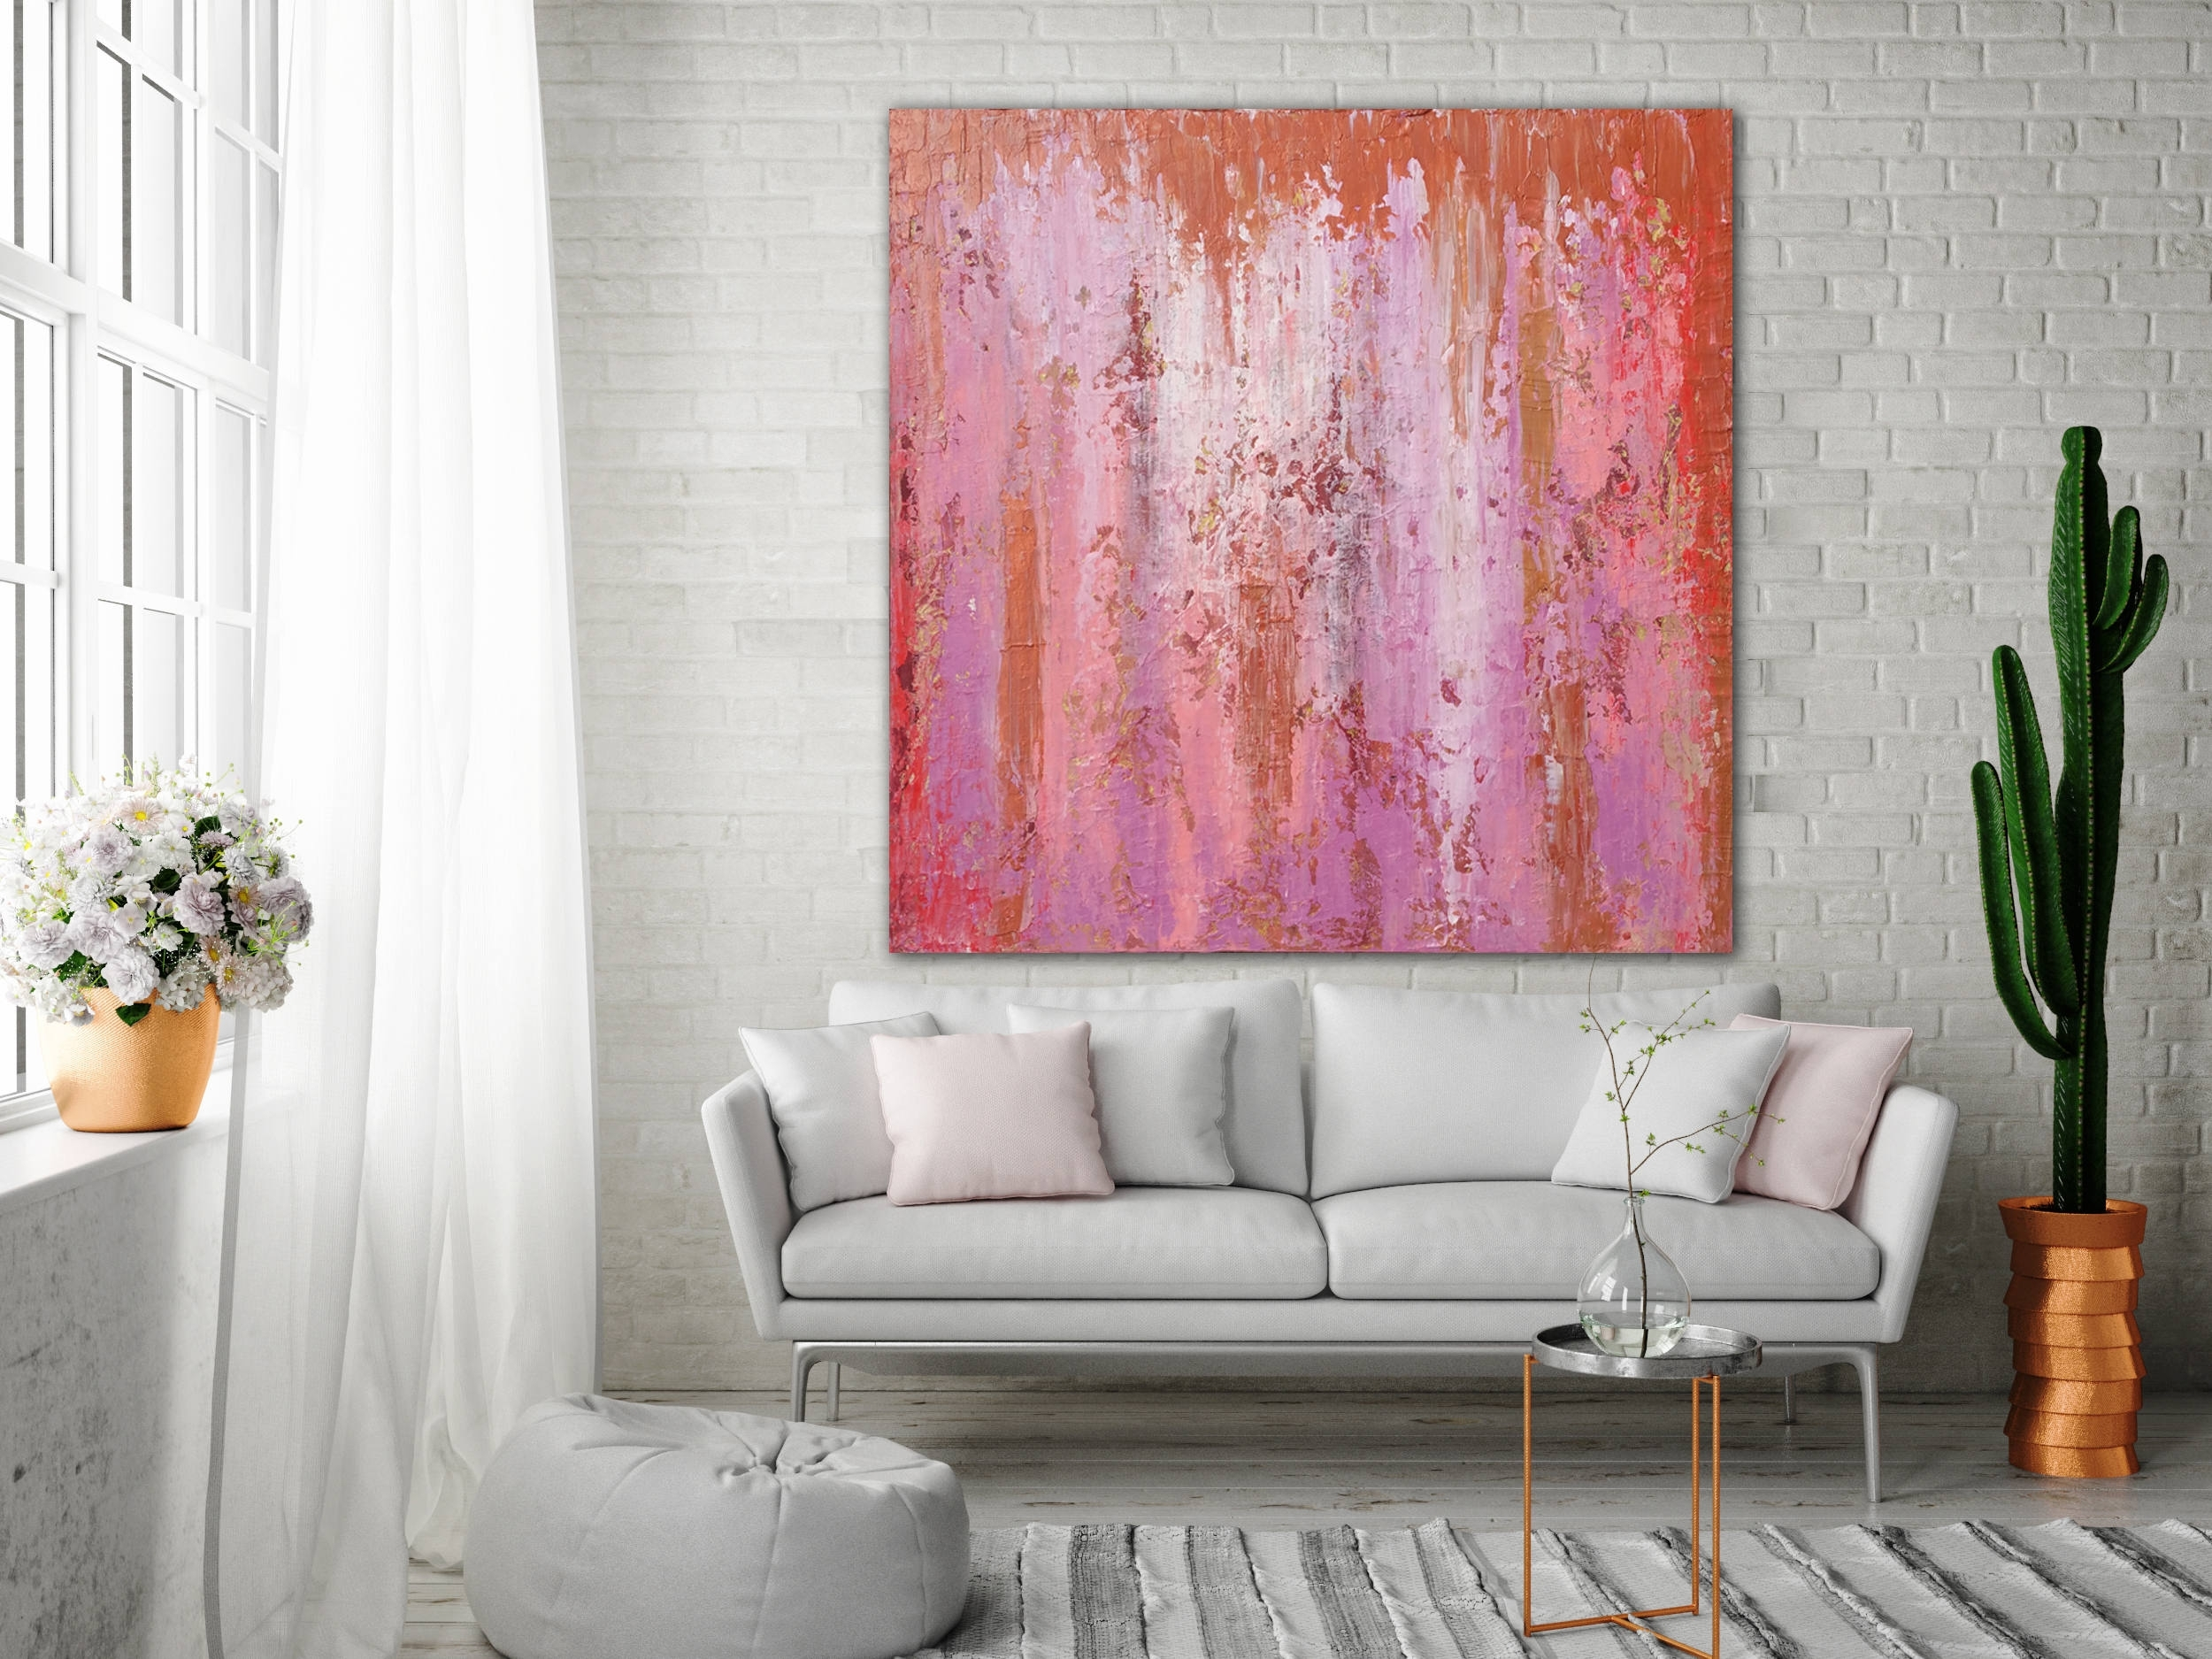 Abstract Painting Custom Unstretched Xlarge Canvas Art Oversized In Recent Pink Abstract Wall Art (View 3 of 20)